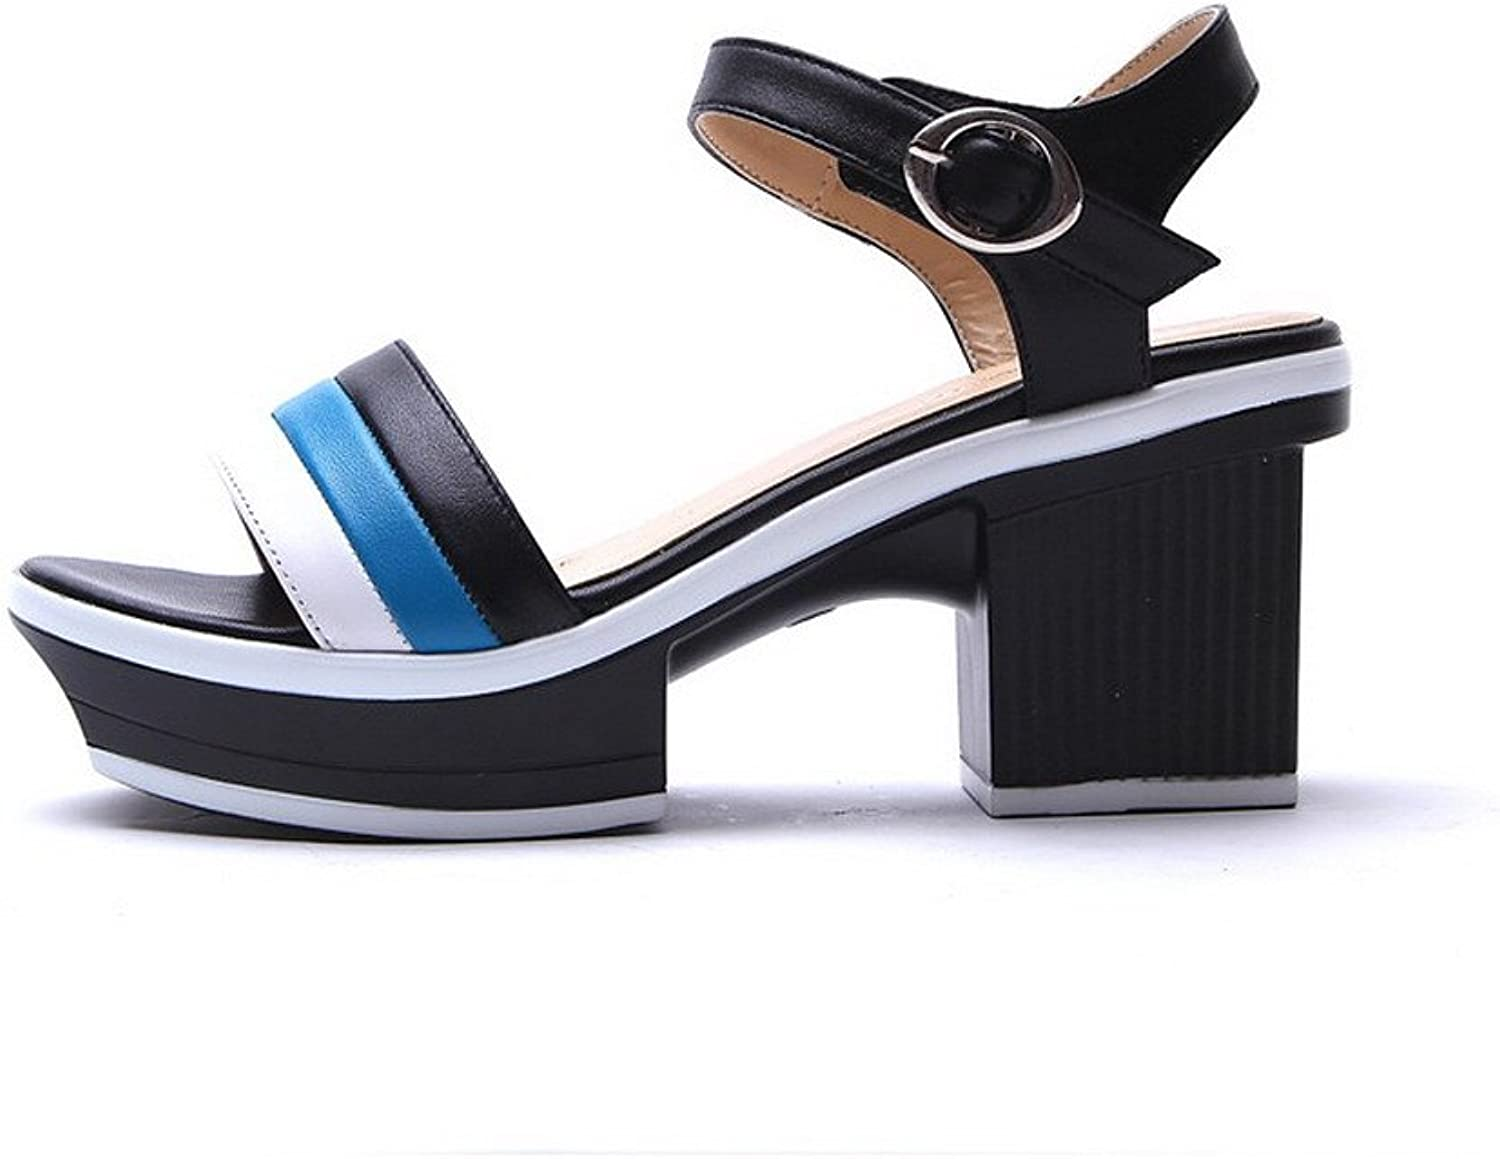 WeiPoot Women Open Toe High Heels Cow Leather Soft Material Assorted colors Sandals, Black, 7.5 B(M) US